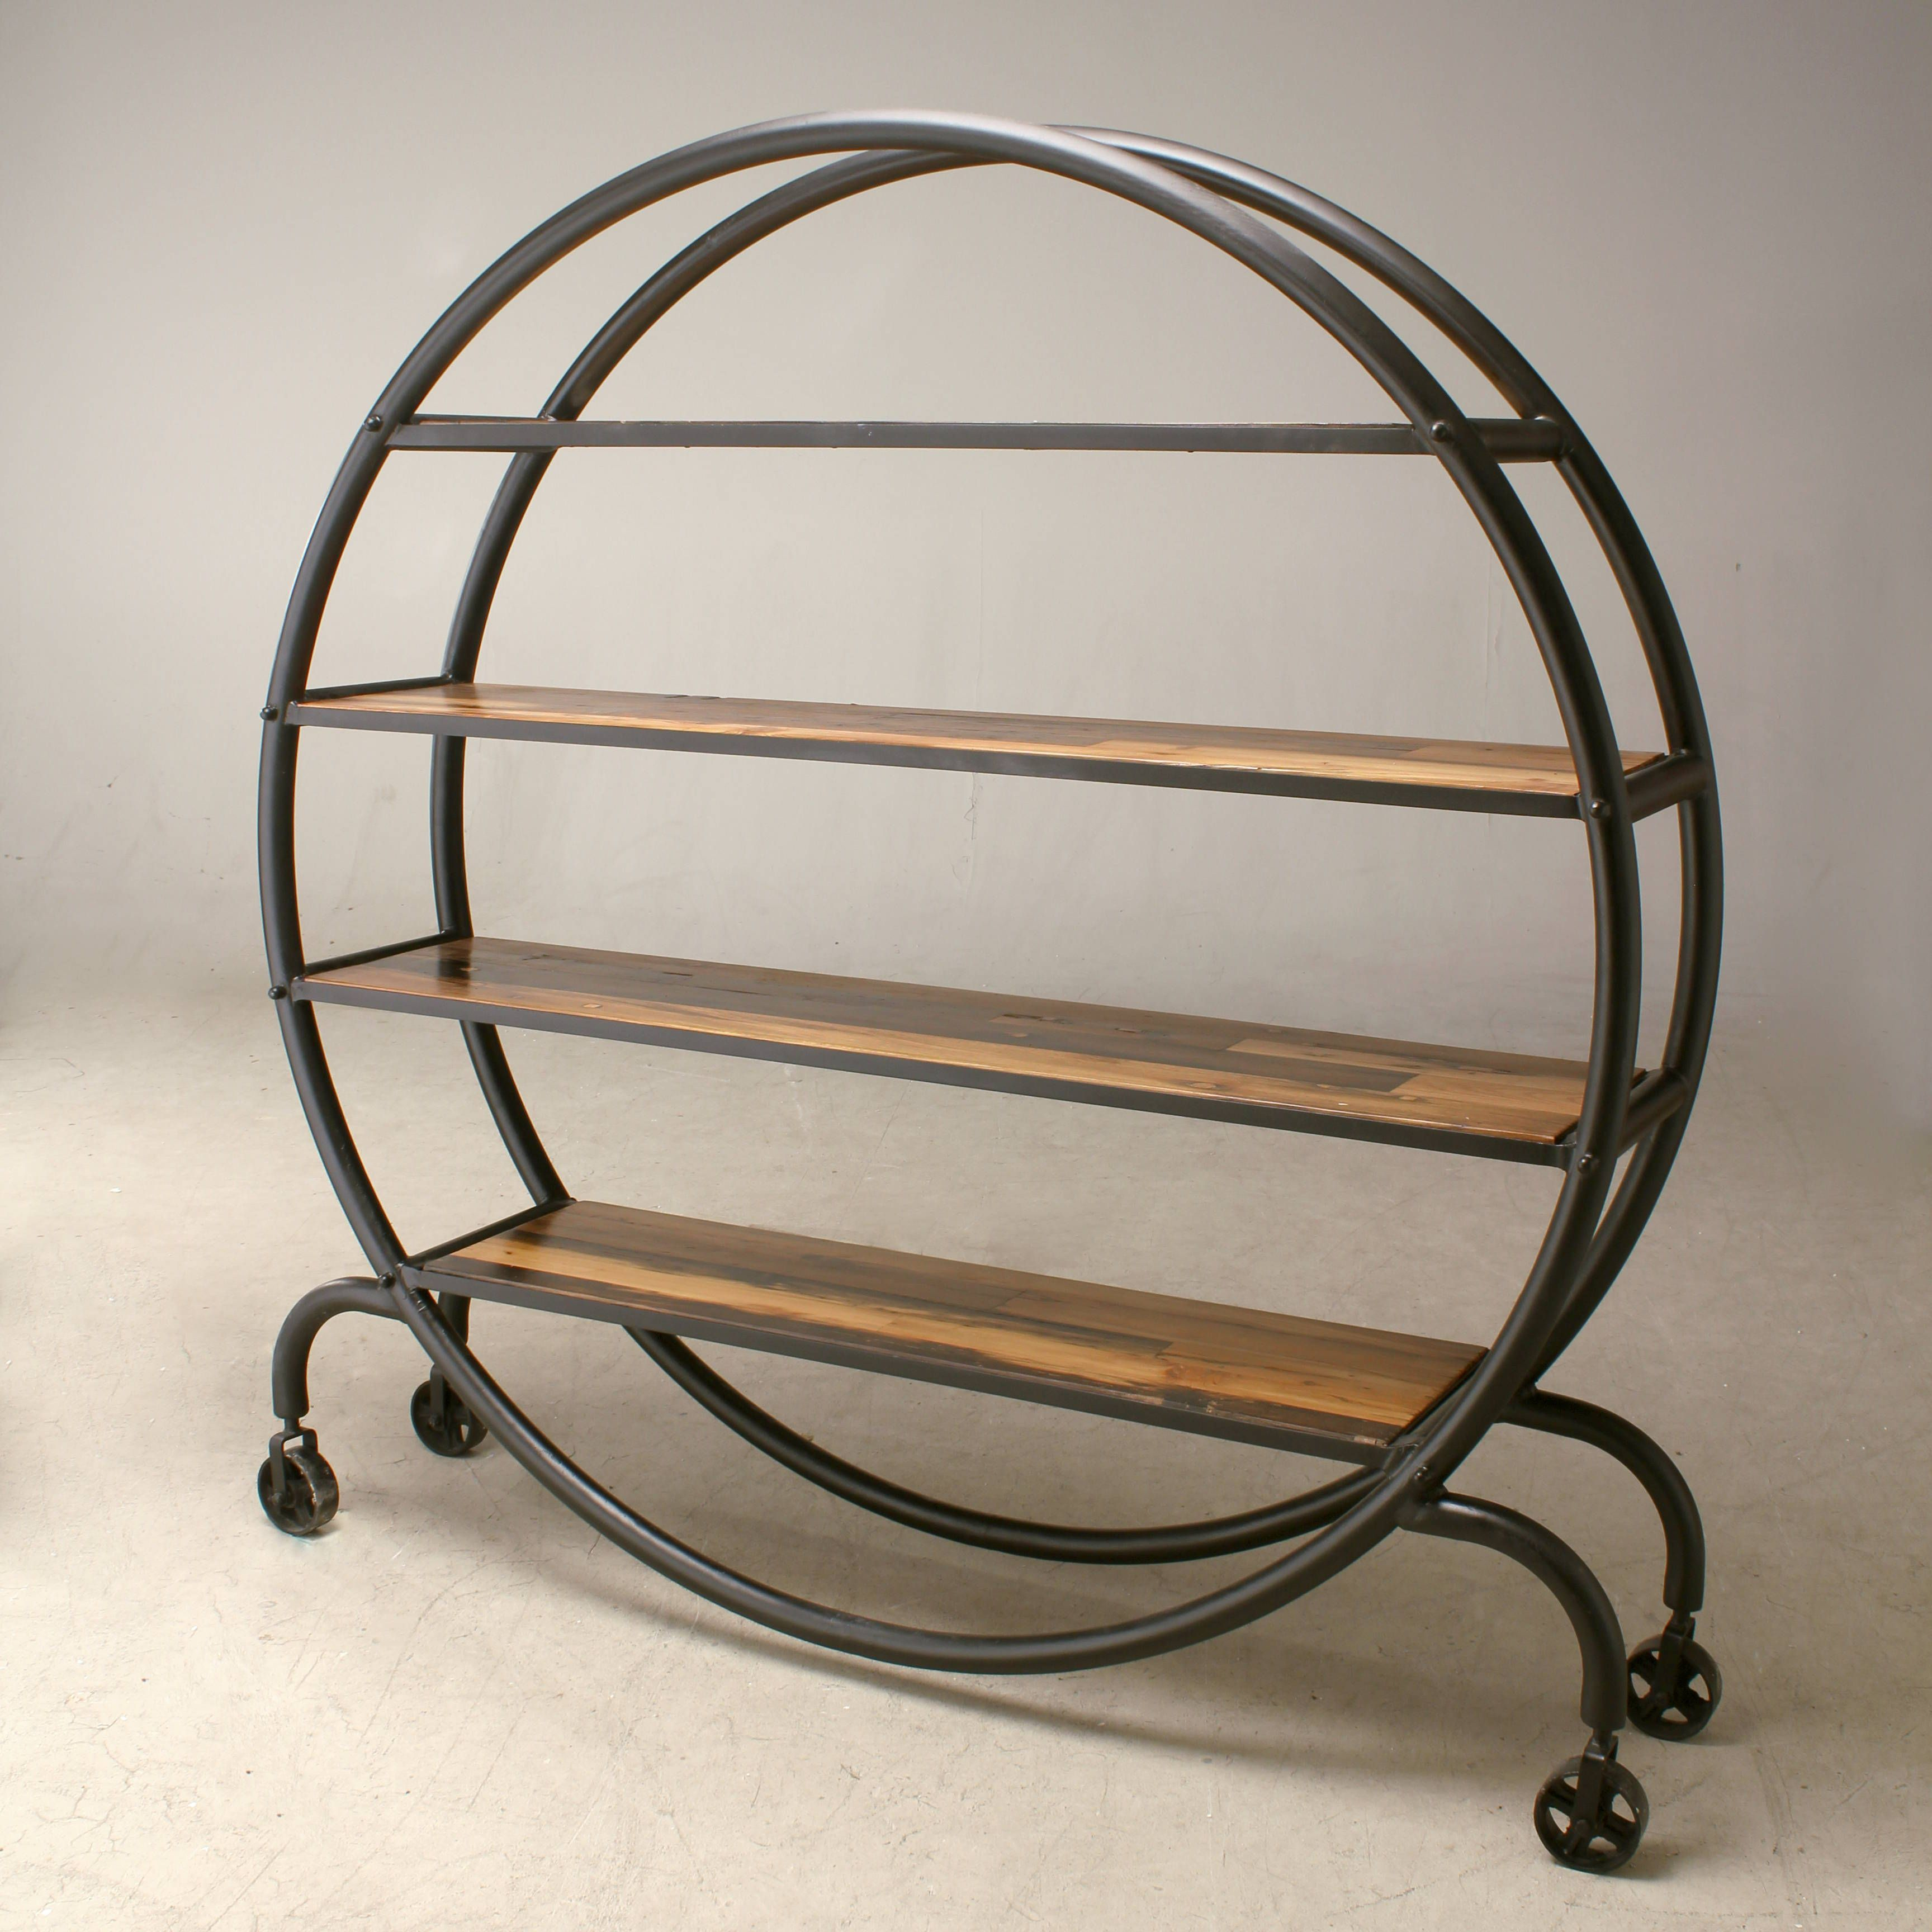 shelving room furniture world shelves library category espresso display bookshelf cabinets market bookcases augustus living rustic do xxx circular